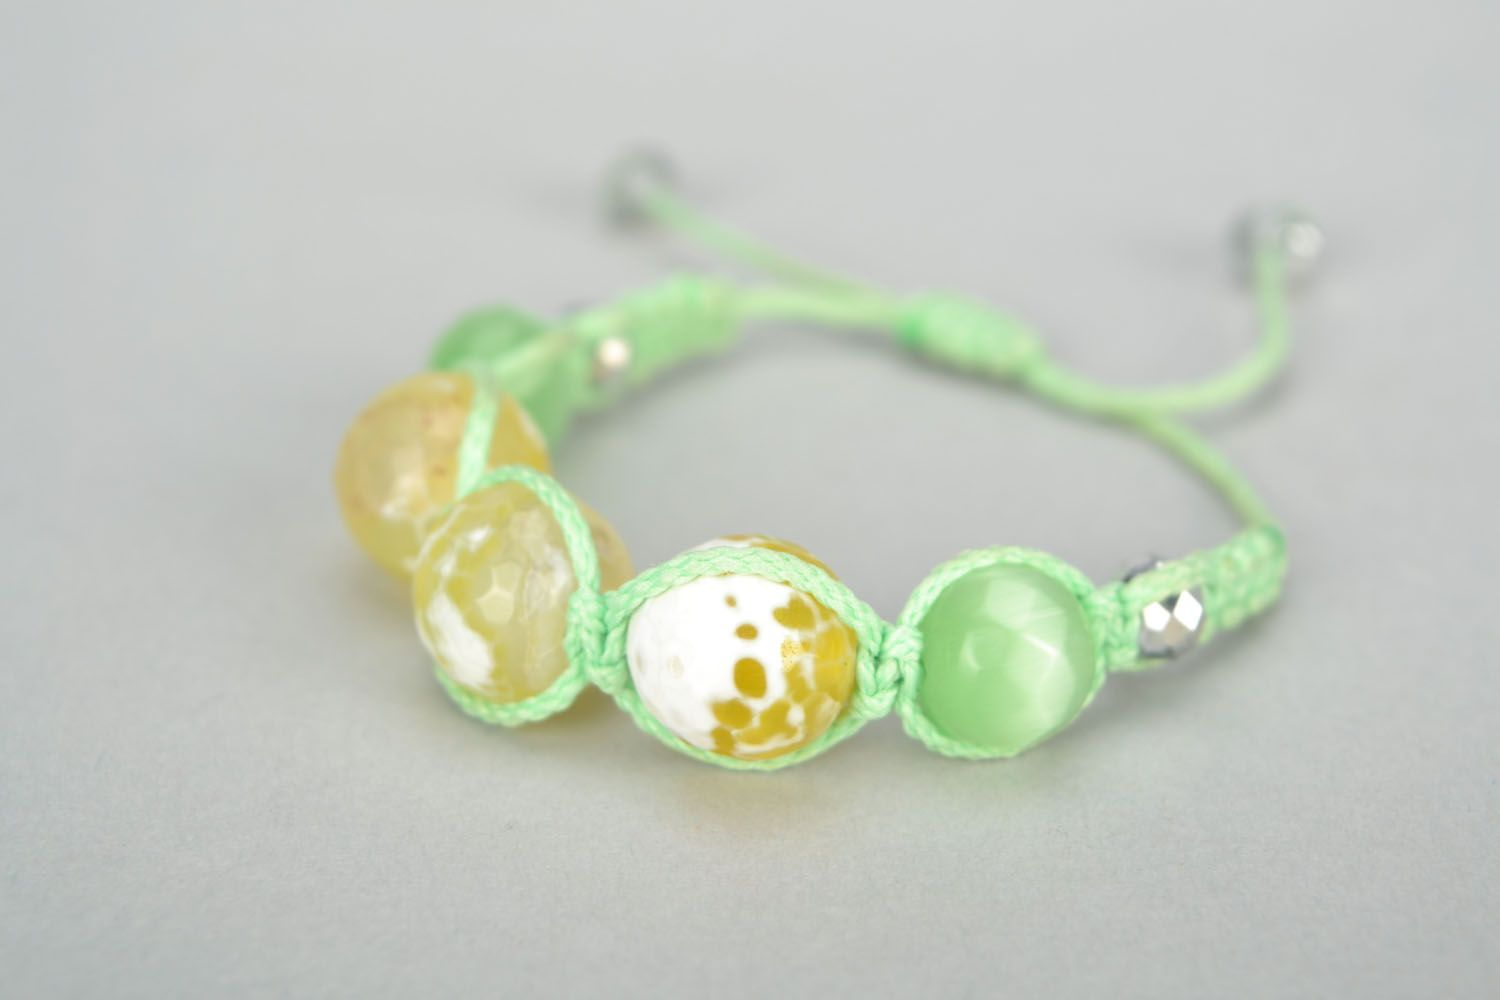 Woven bracelet with cat's eye stone photo 3